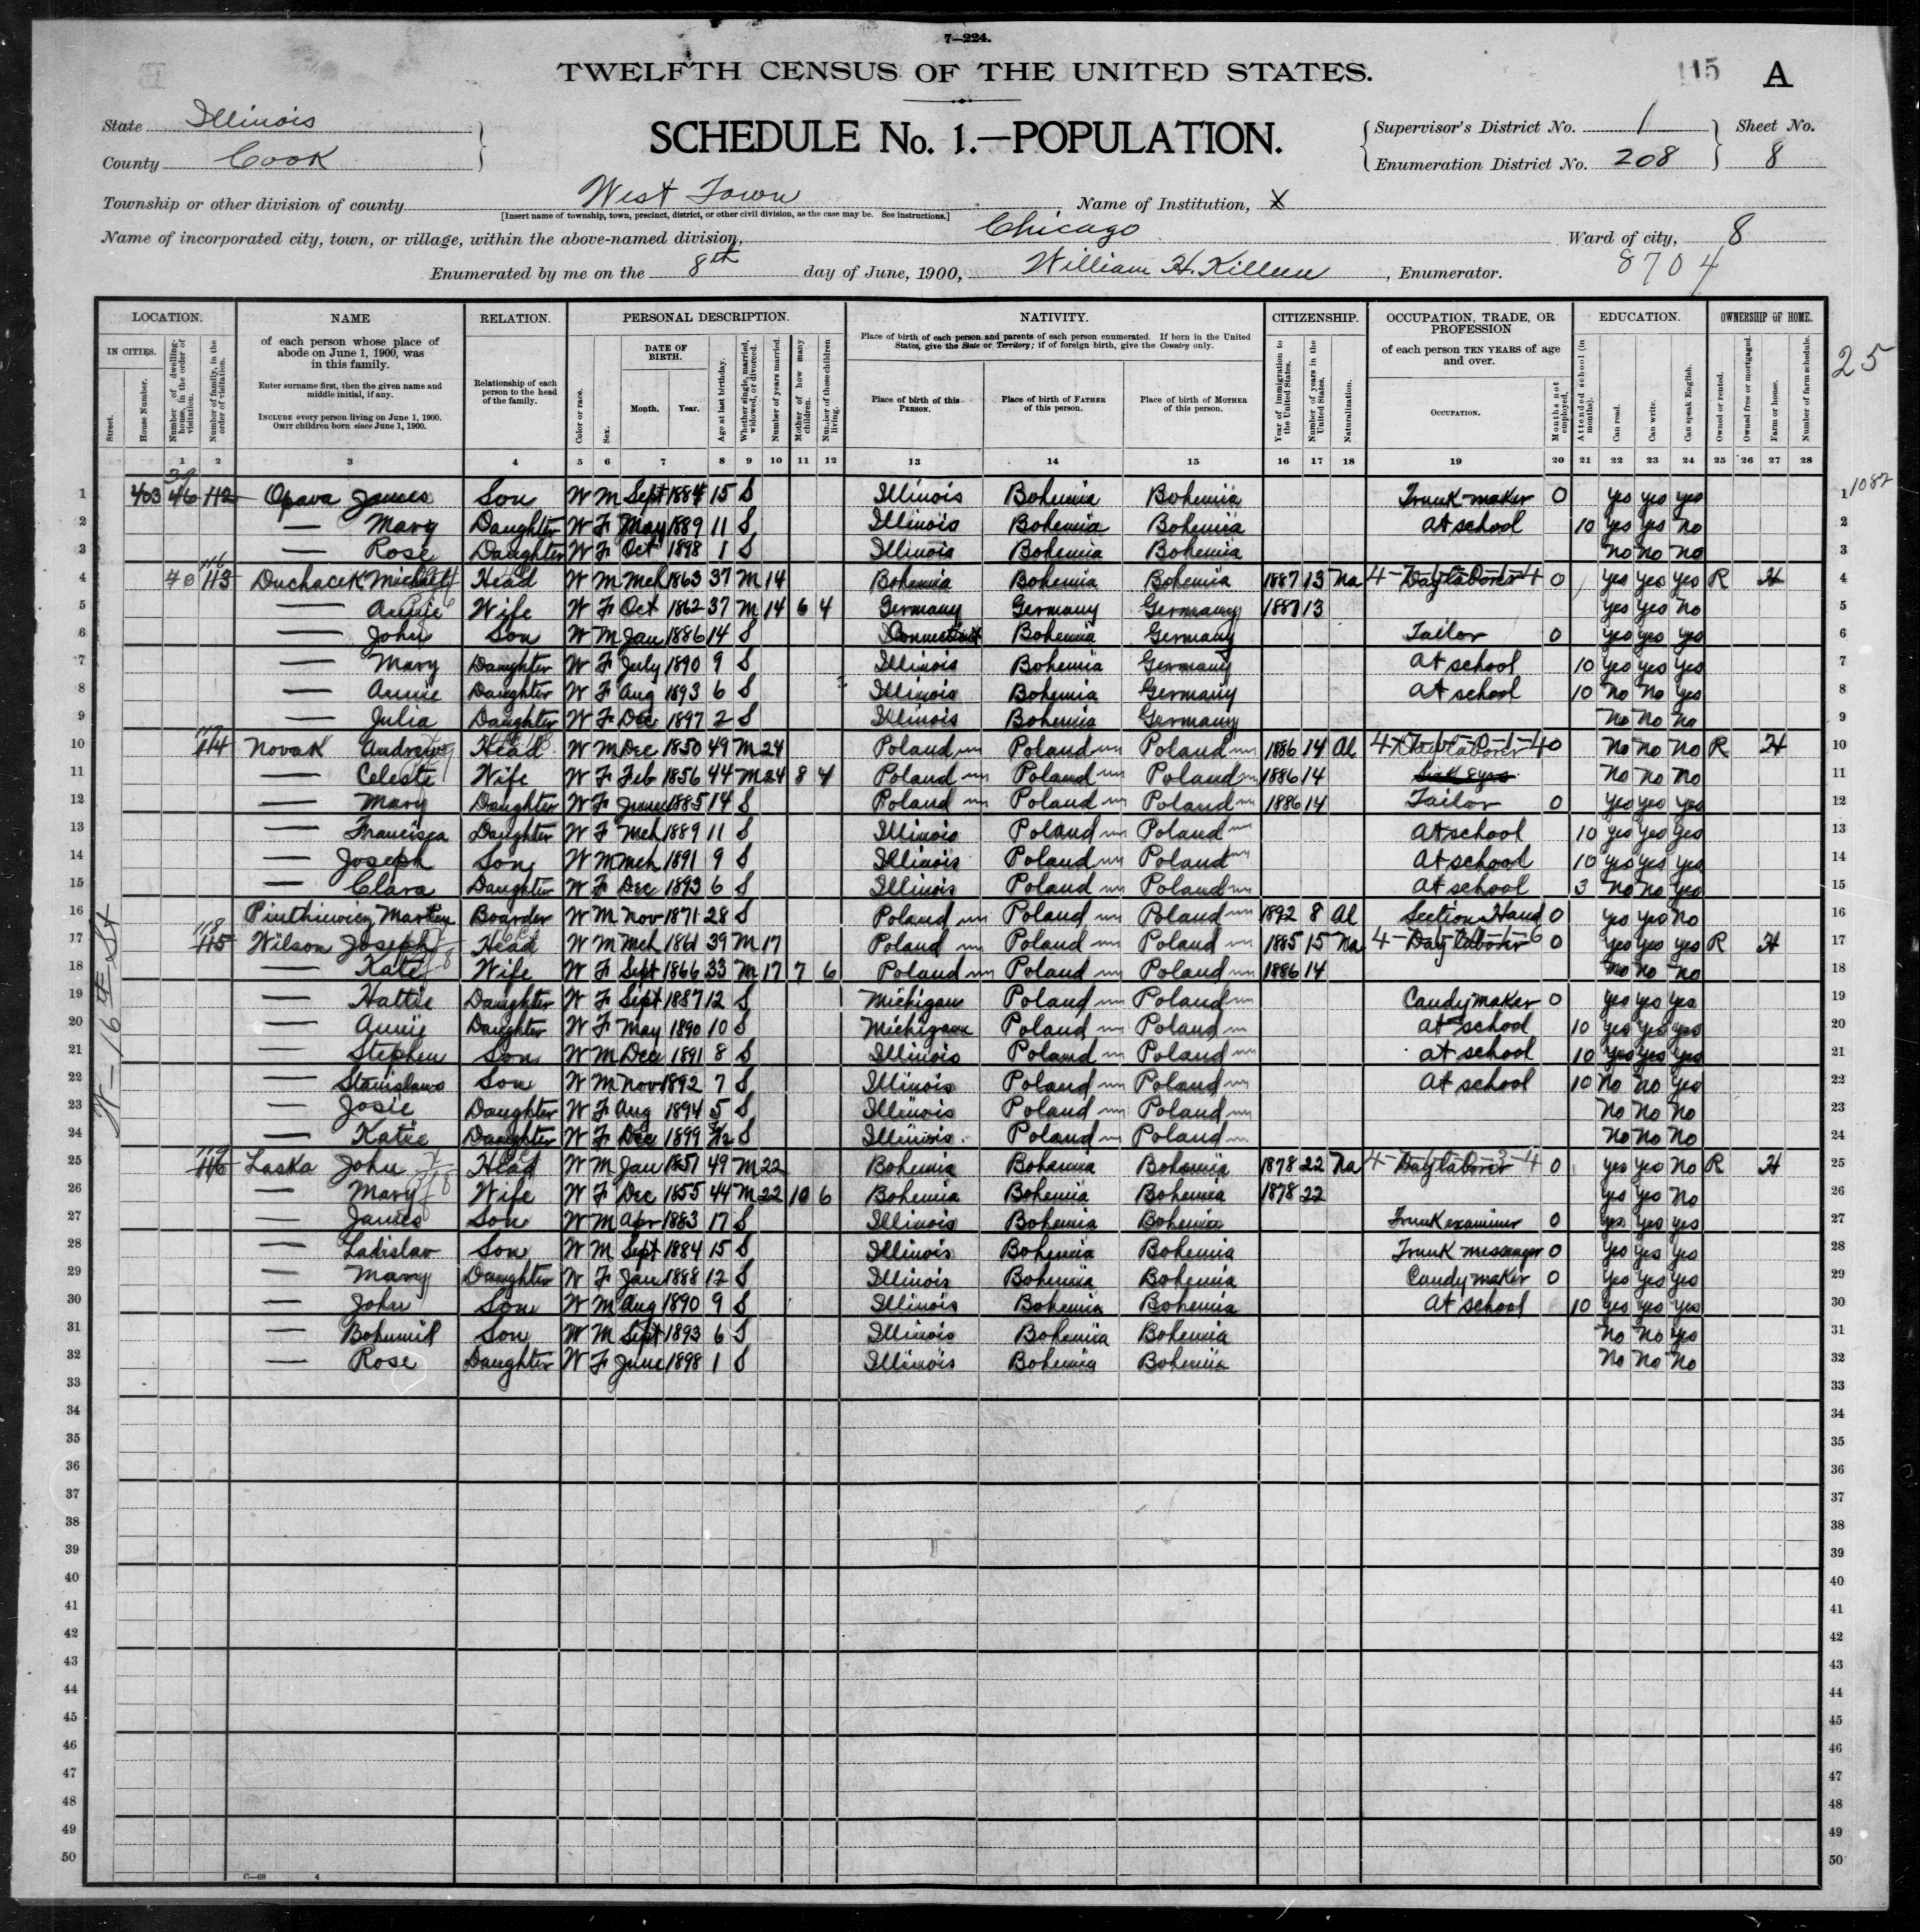 Illinois: COOK County, Enumeration District 208, Sheet No. 8A